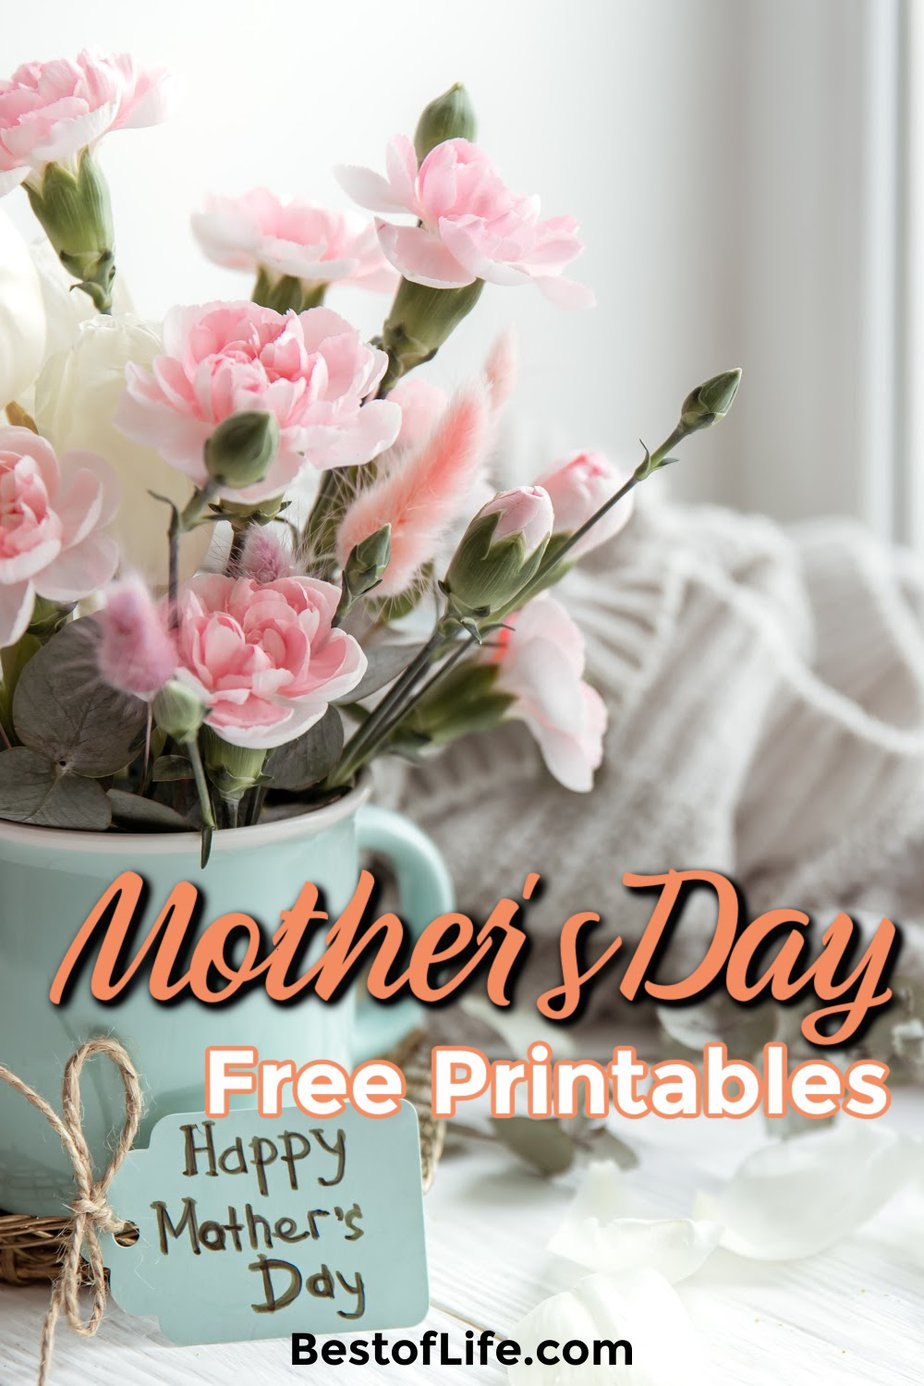 You can tell your mom just how special she is to you with some of the best free Mother's Day printables that she will surely adore. Free Printables | Mother's Day Gift Ideas | Gifts for Mother's Day | Crafts for Mom | DIY Home | DIY Gifts for Mom | Mother's Day Gift Ideas | Mother's Day Crafts for Kids #freeprintables #mothersday via @thebestoflife